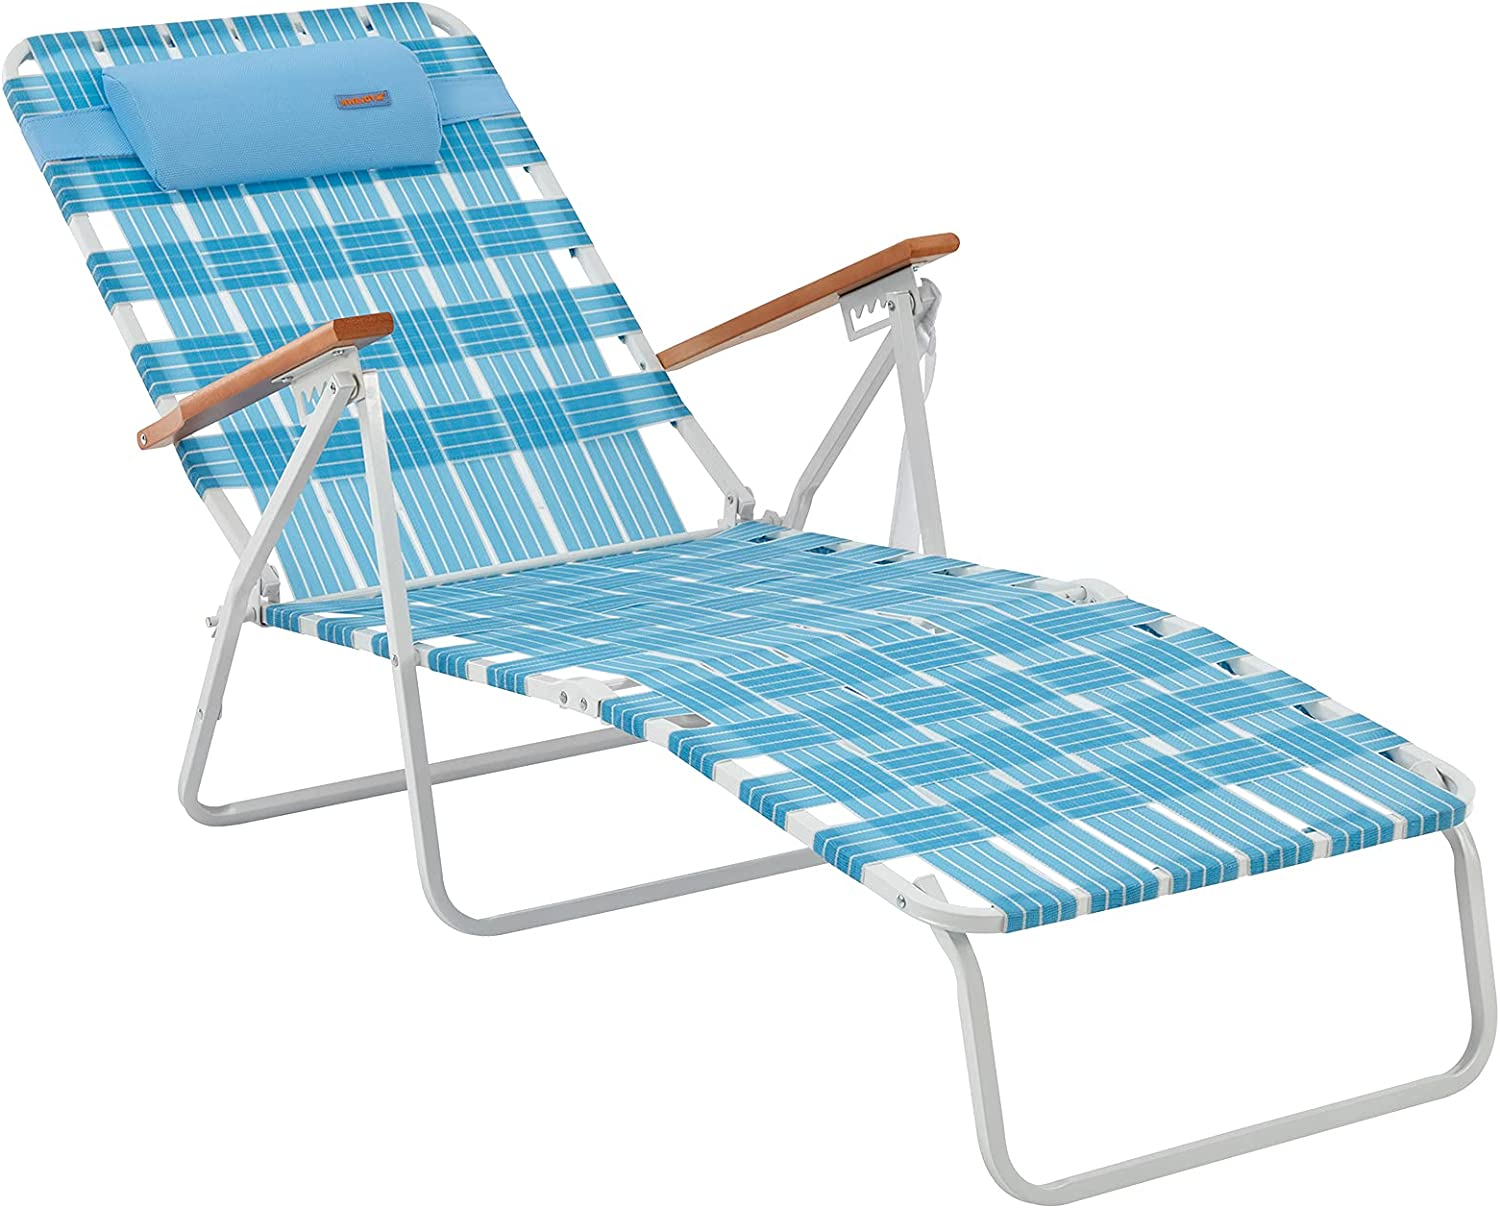 #WEJOY 5 Adjustable Folding Webbing Beach Chaise Lounge Chair,Portable Recliner Chairs for Adults with Wooden Arm,Backpack Strap,Pillow for Outdoor Sunbathing Pool Side Sun Deck Lawn Patio Camping